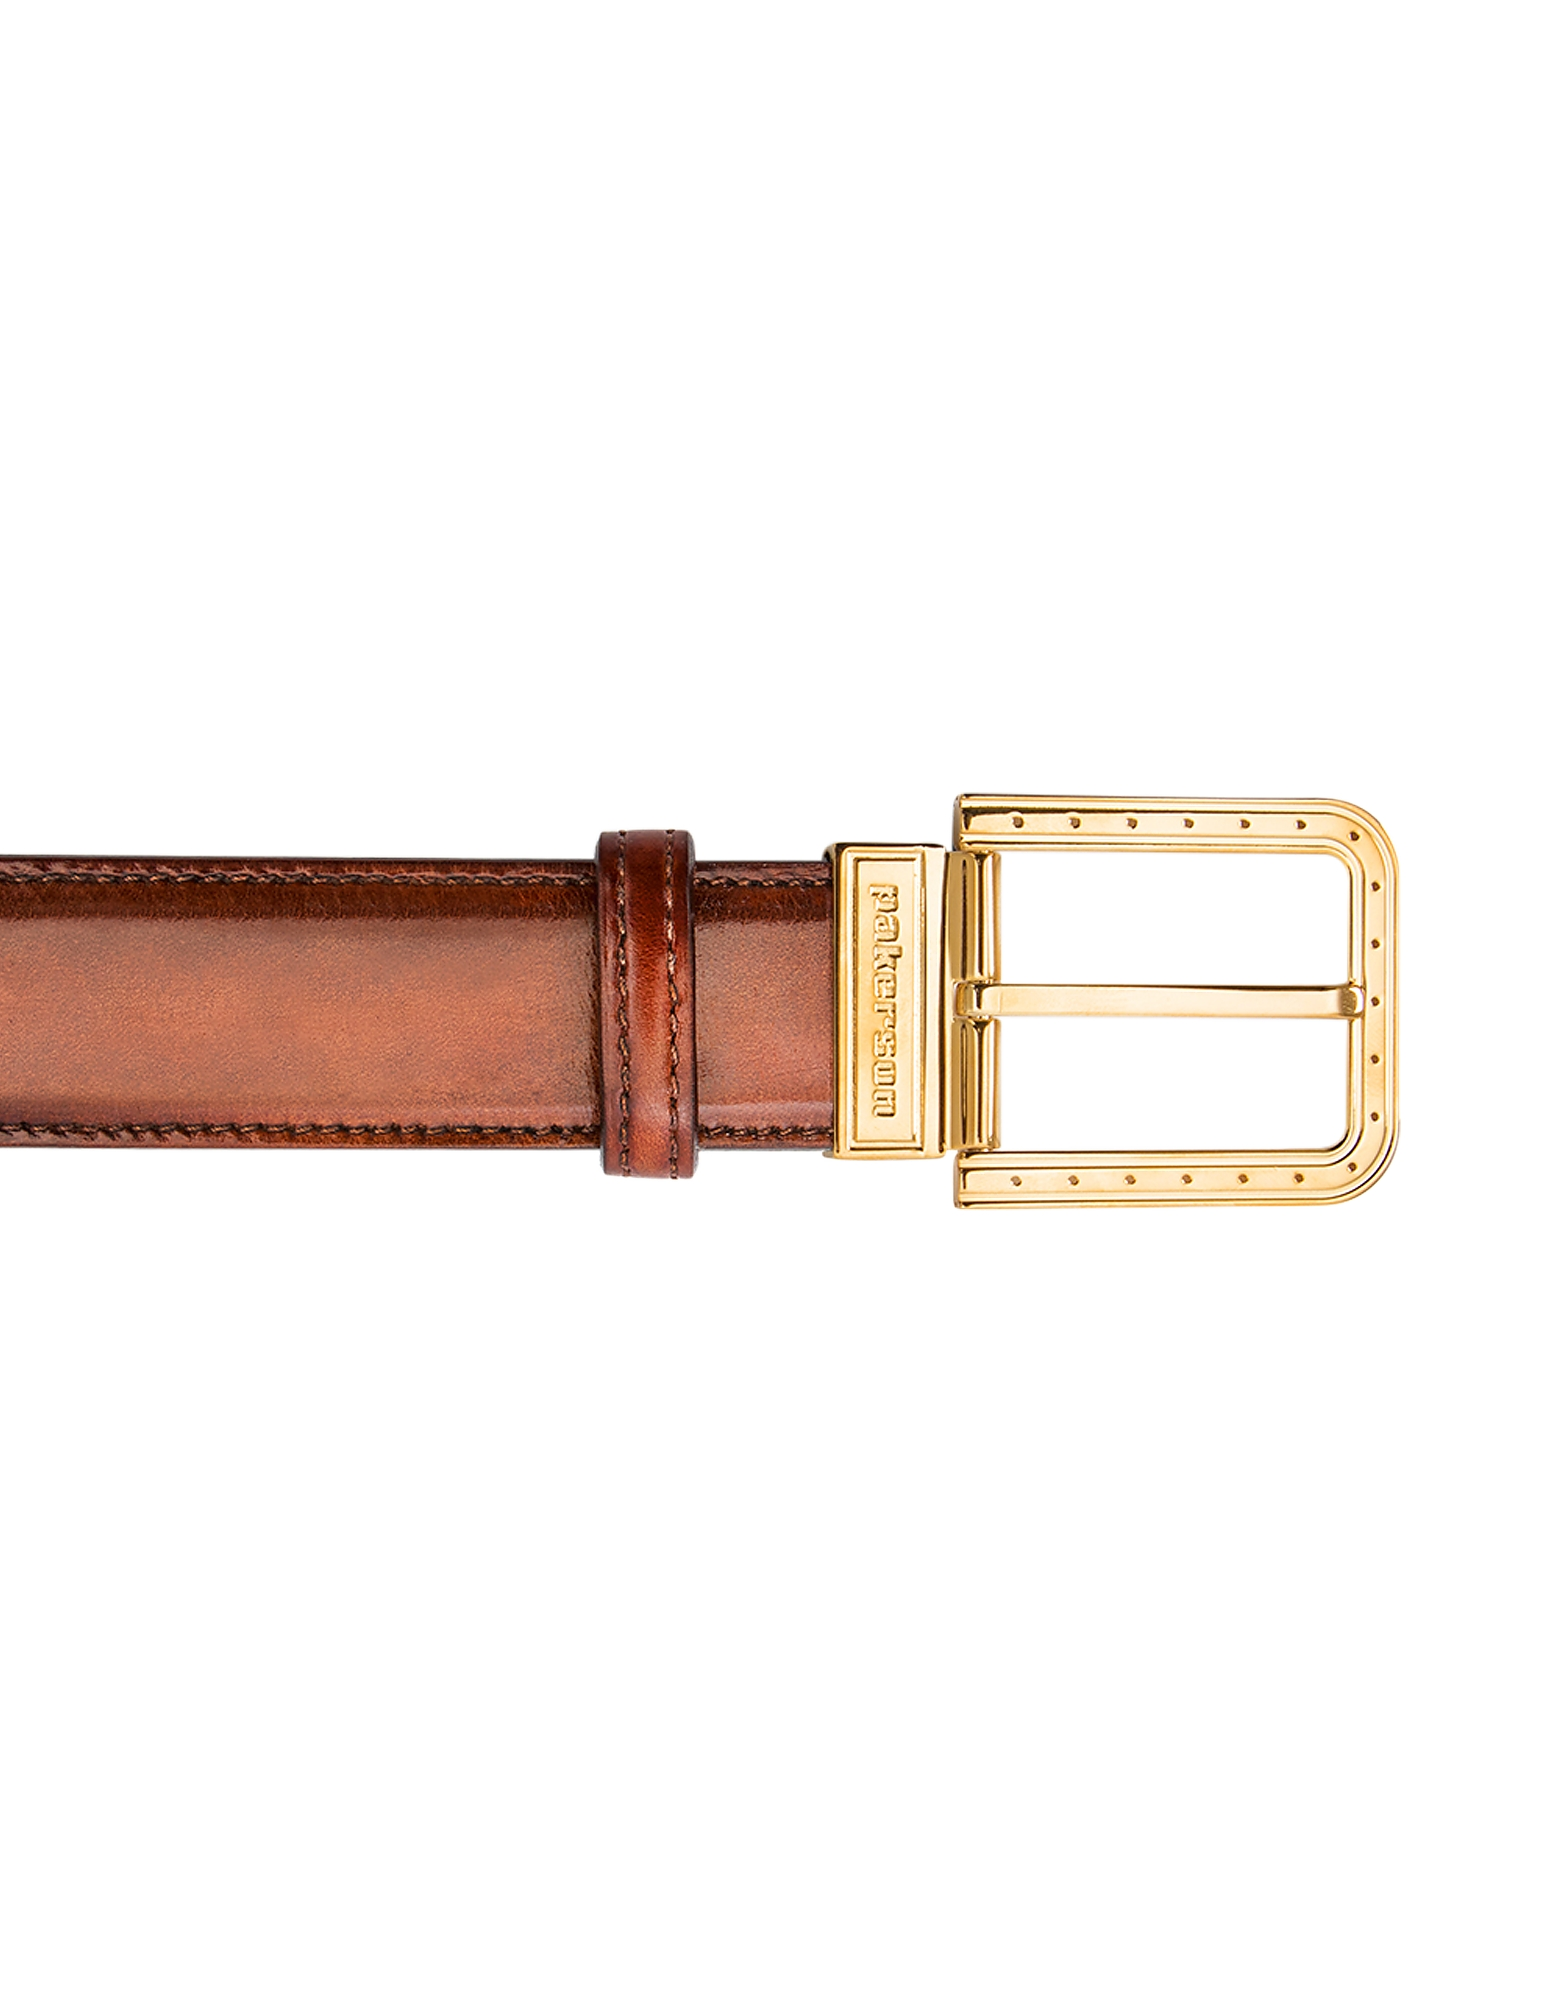 Pakerson Designer Men's Belts, Ripa Wood Italian Leather Belt w/ Gold Buckle